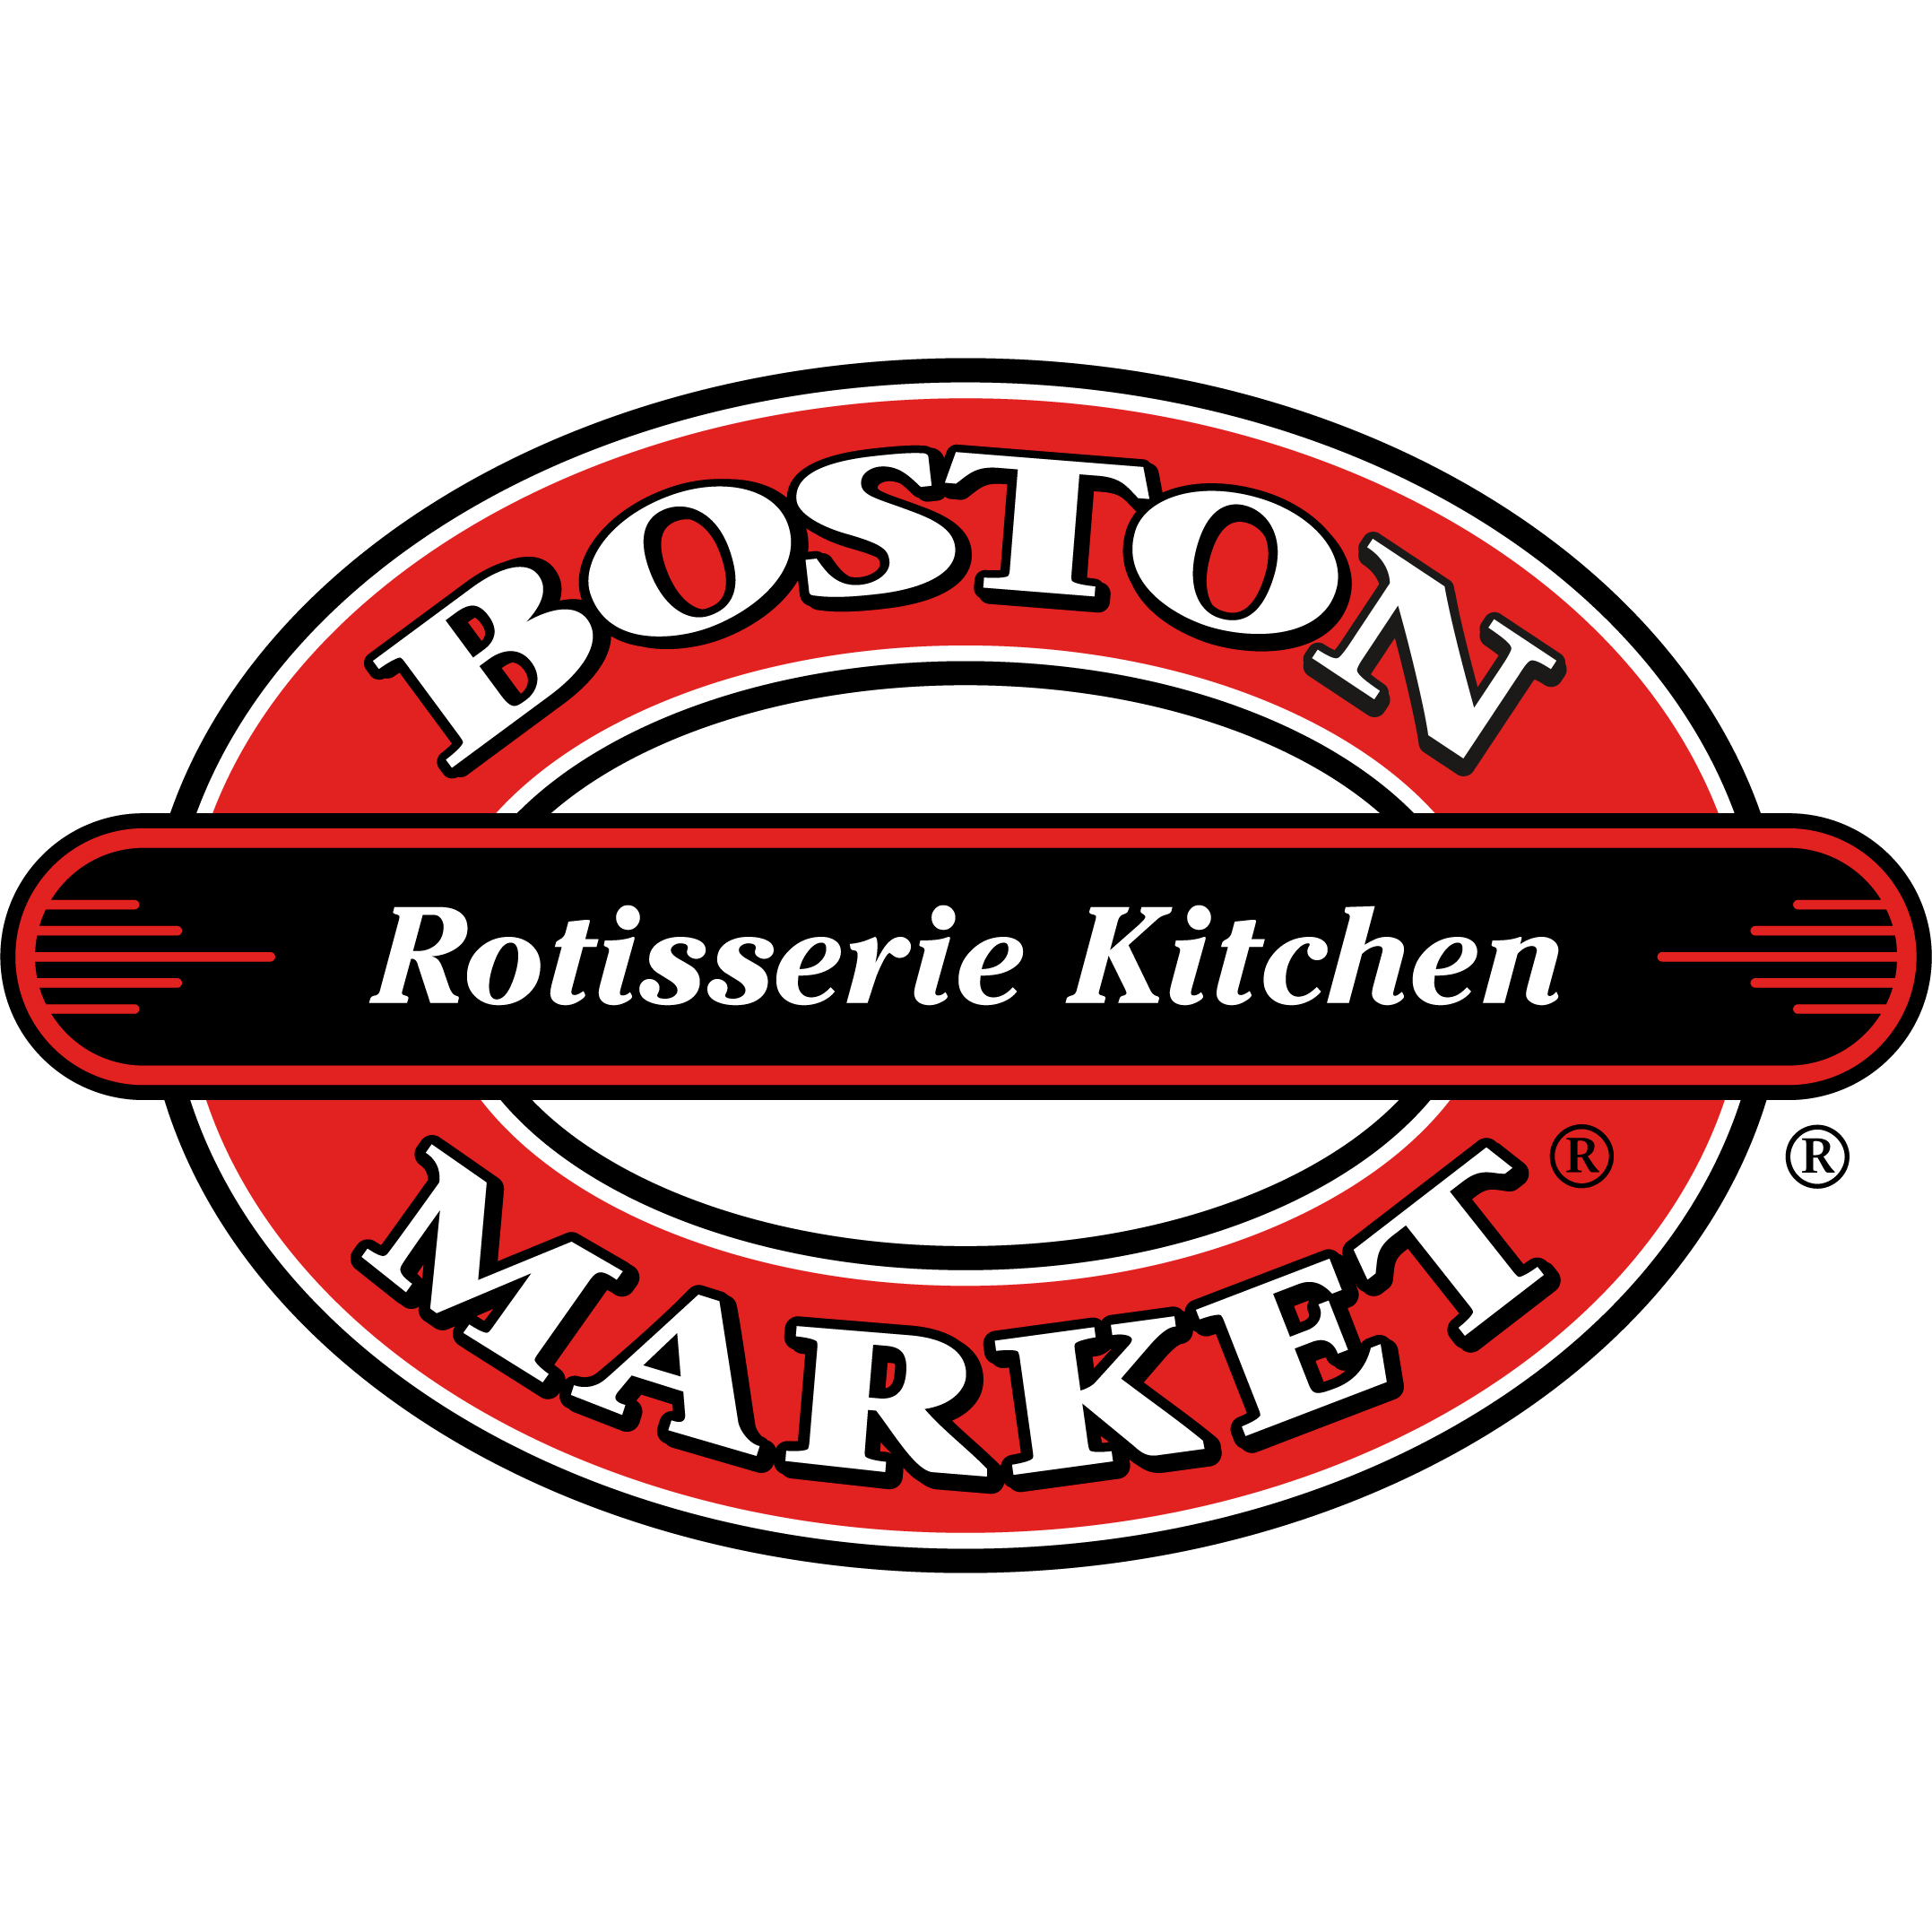 Boston Market image 11